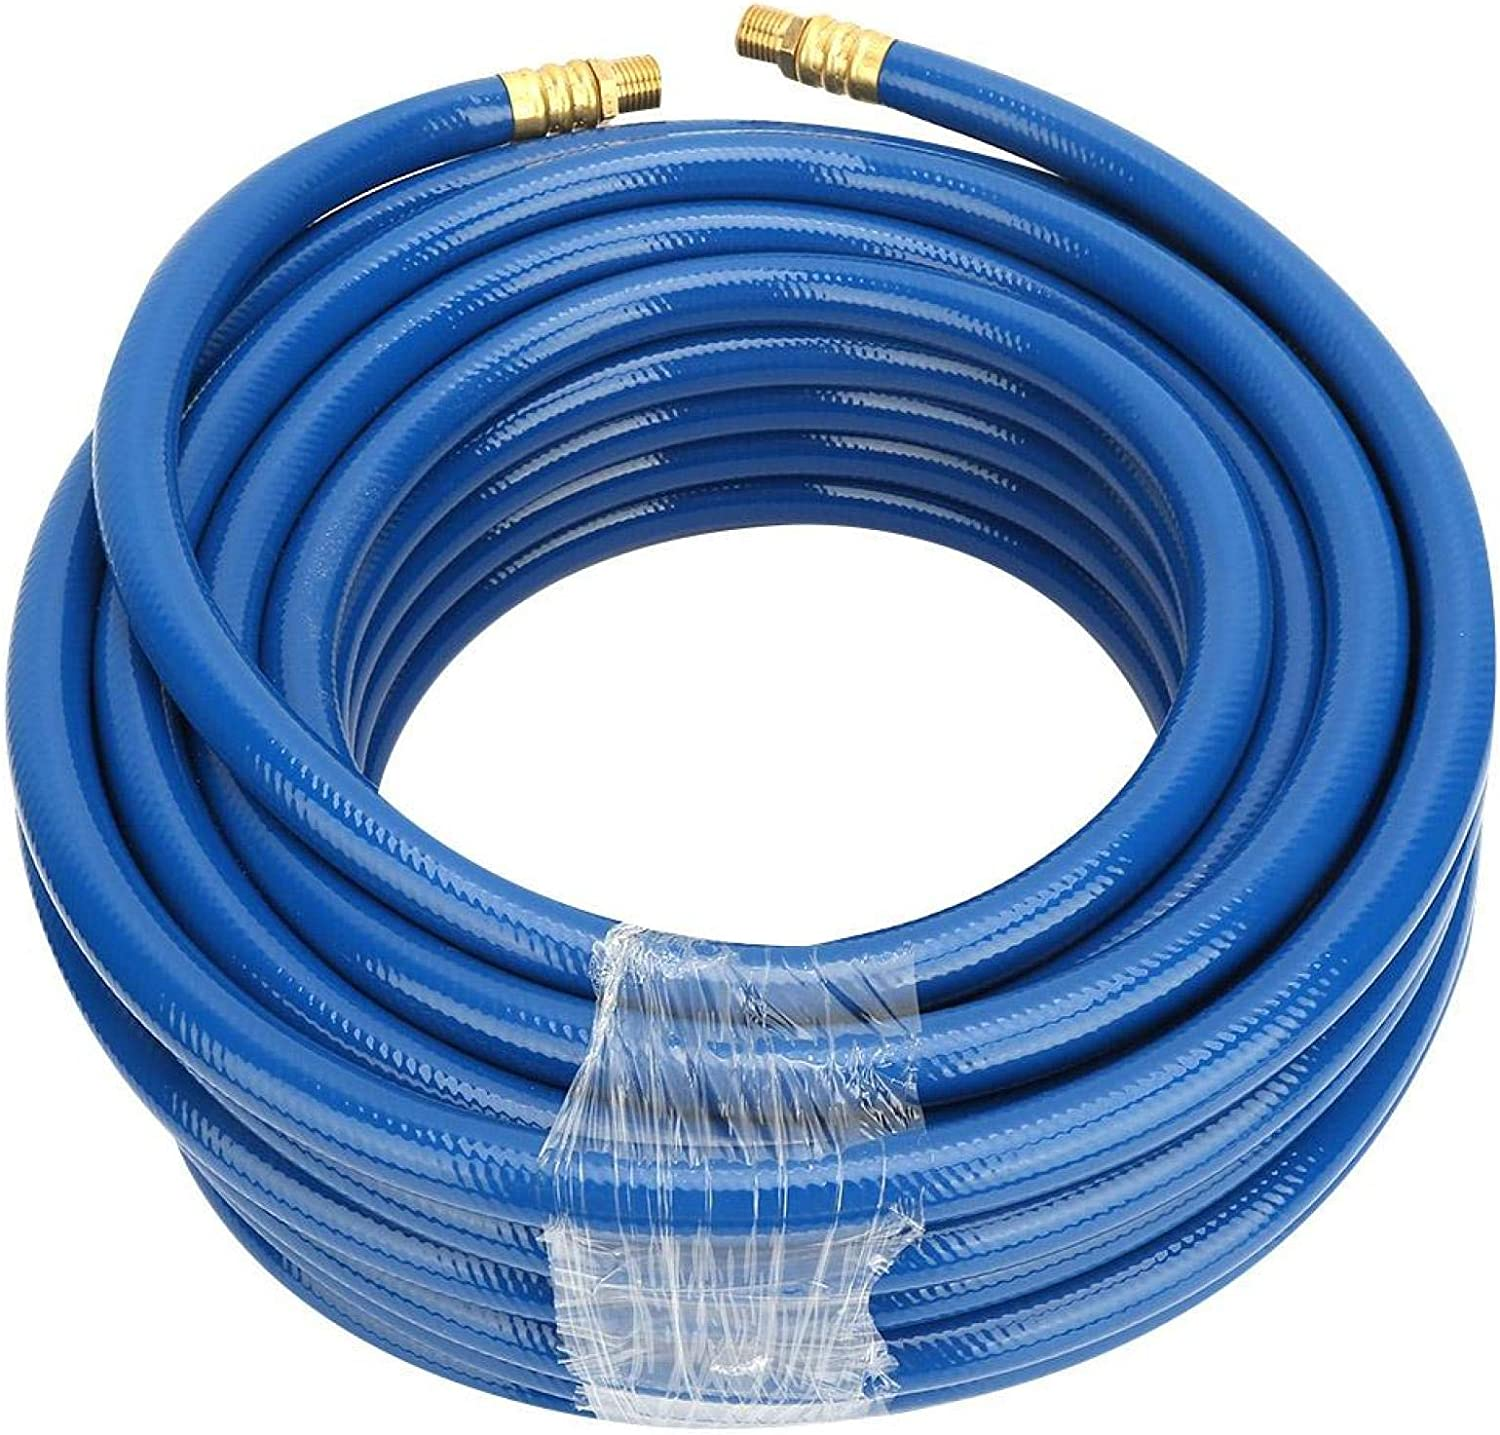 Excellence Ginorgee Compressor - 15M Max 80% OFF Blue Flexible with PVC Hose Pneumatic